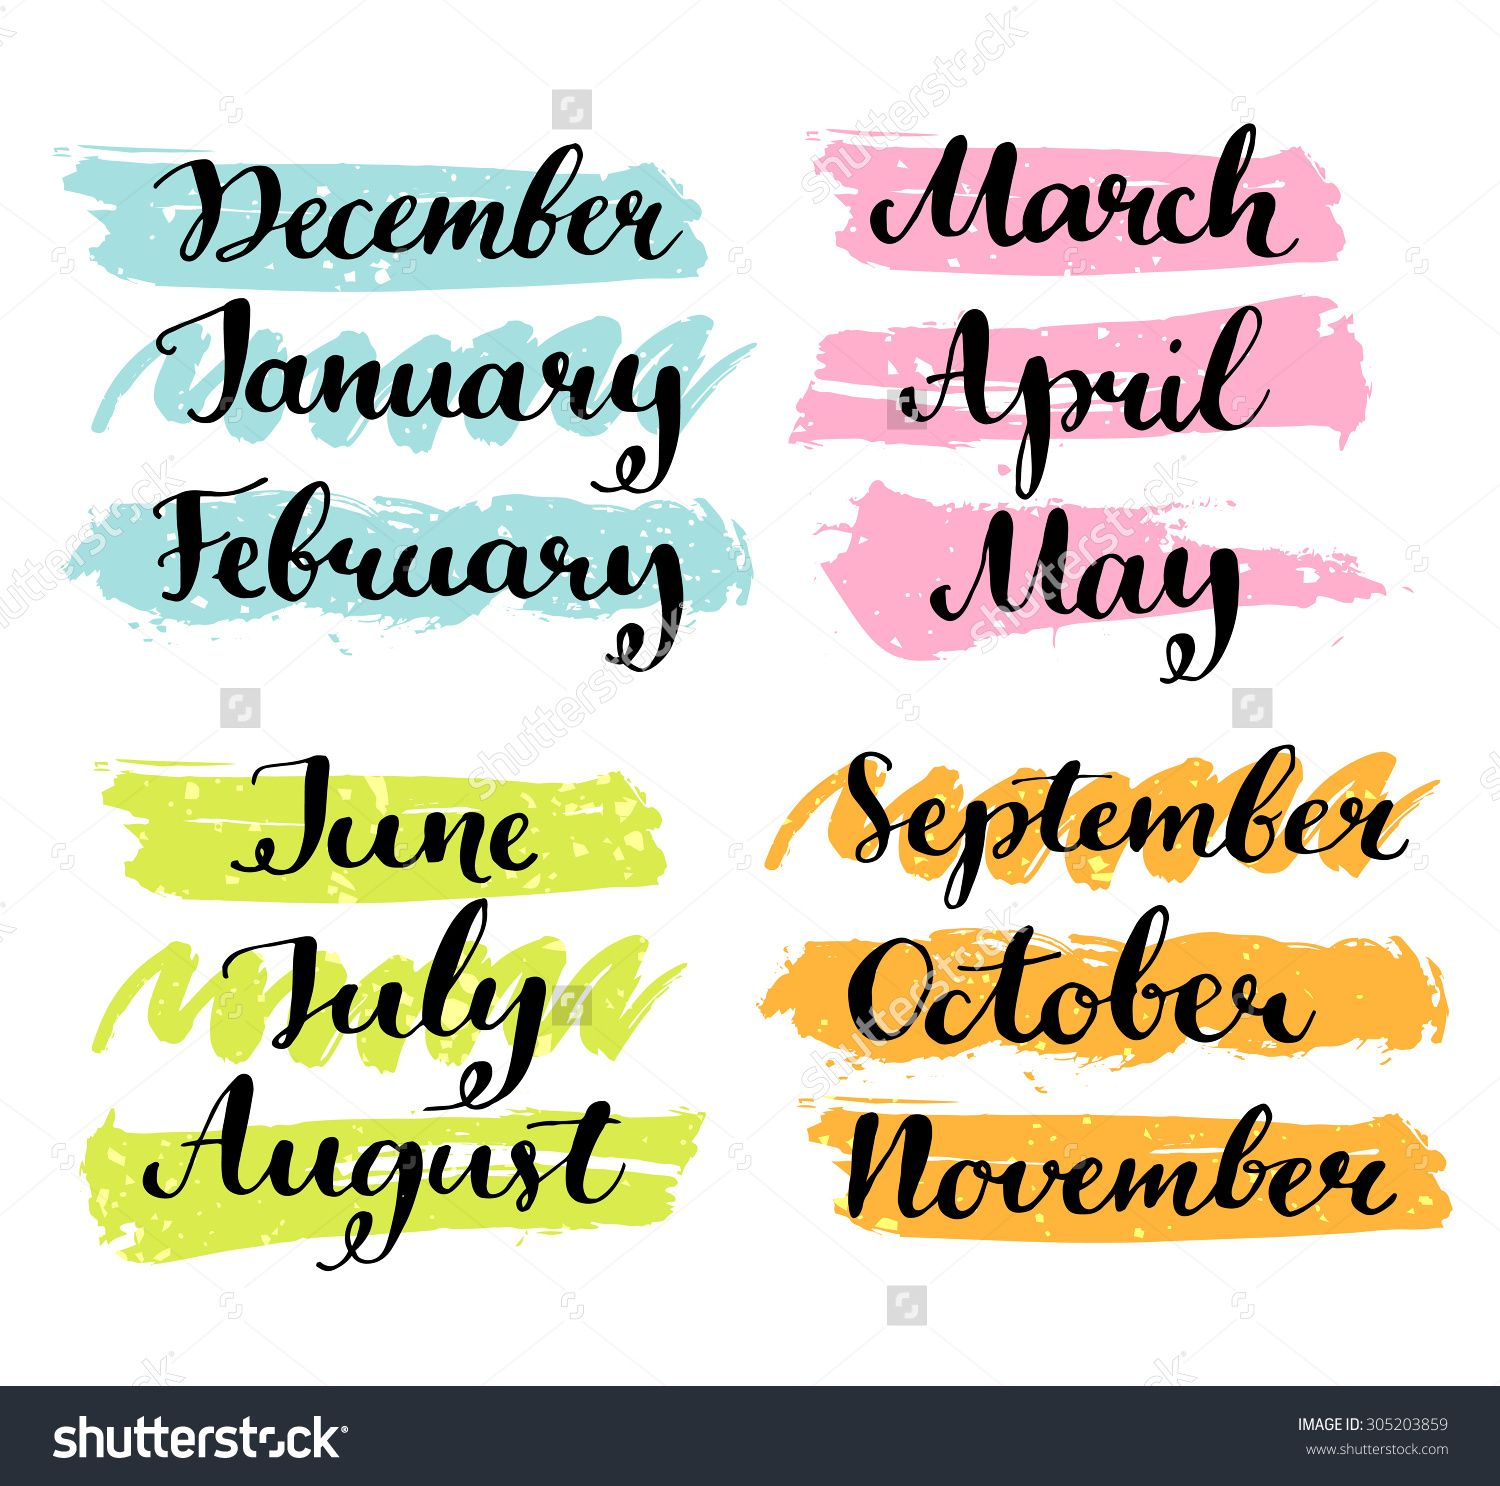 Handwritten Months Of The Year December January